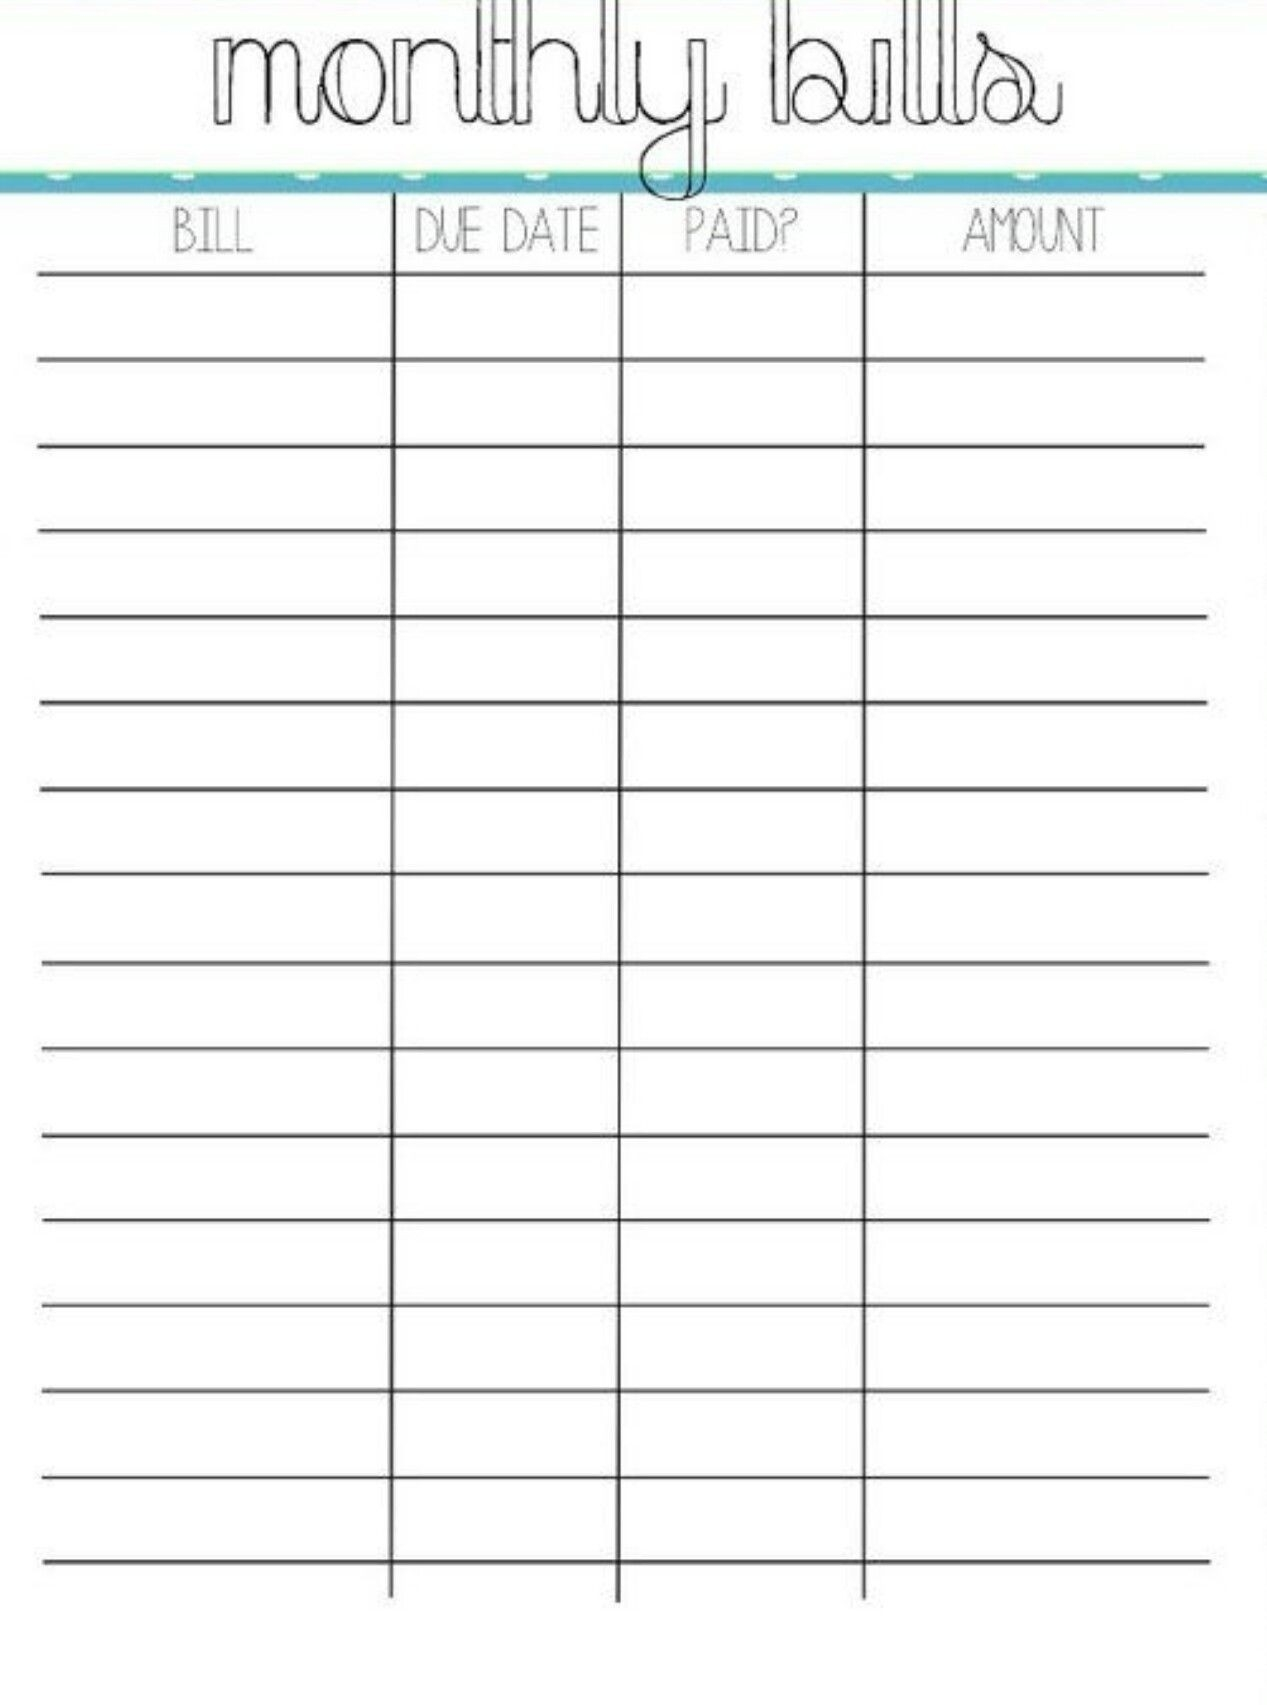 Pin By Crystal On Bills | Organizing Monthly Bills, Bill-Monthly Bill Schedule Template